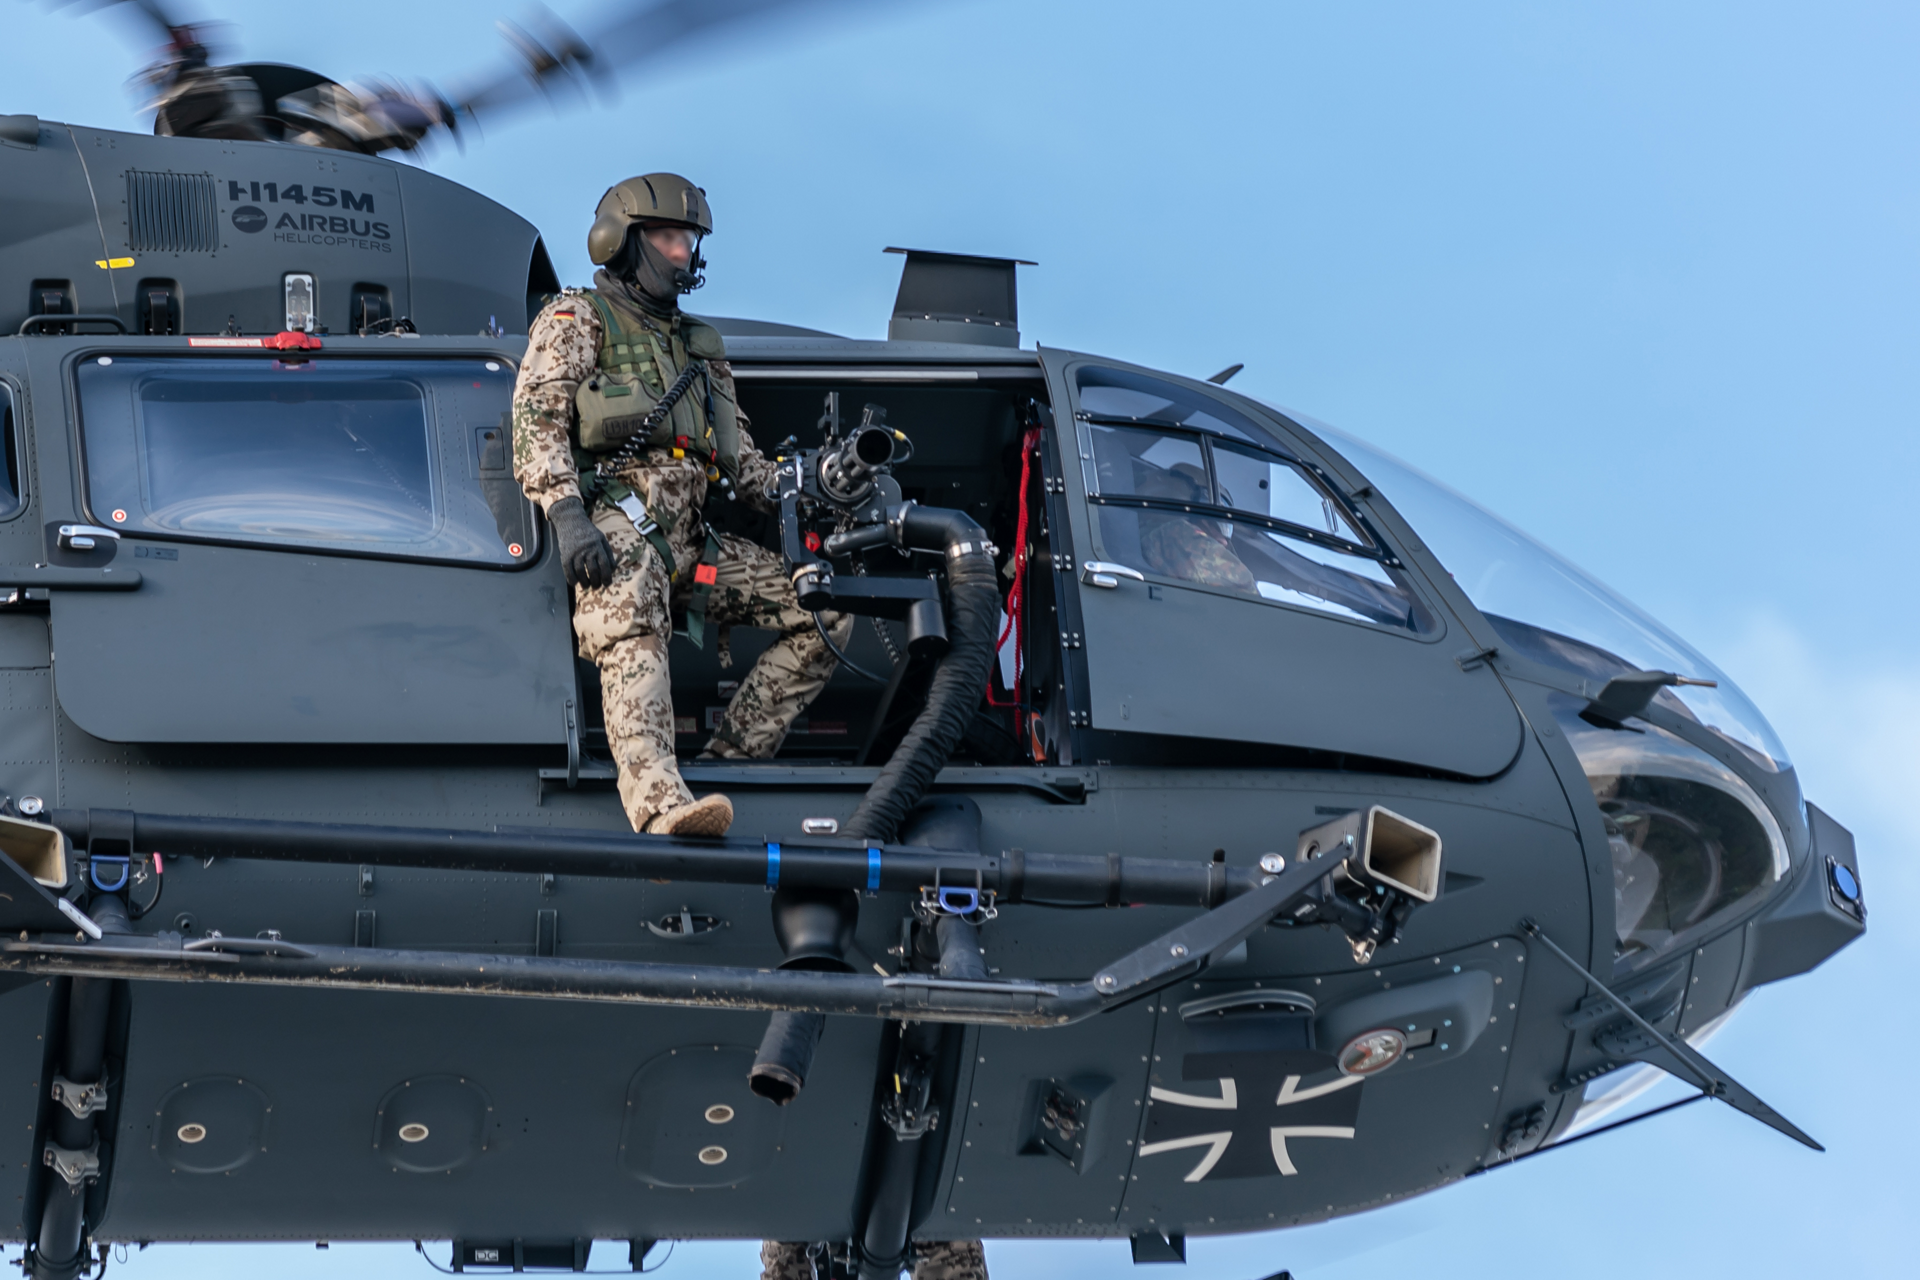 The H145M offers the crucial capability of delivering troops and materials quickly with minimum delay, can rapidly apply fire power to neutralise or destroy opposing forces, offers support for friendly forces in combat, and is ideal for acquiring information, interpreting and exploiting it.